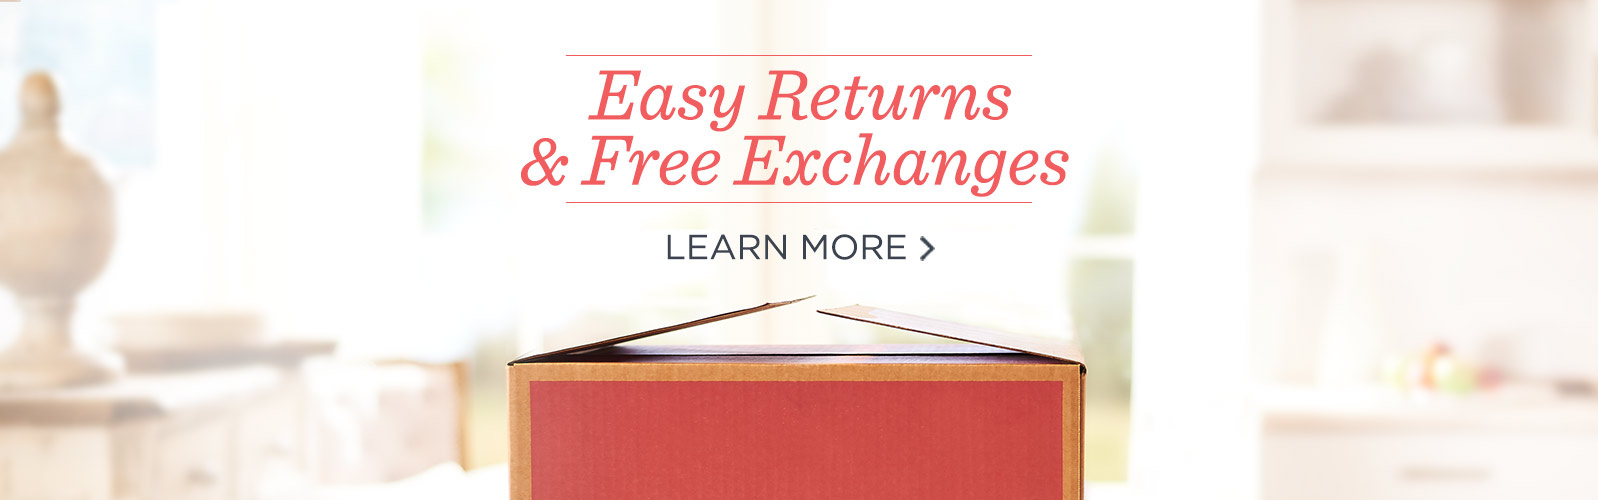 Easy Returns & Free Exchanges, Learn More